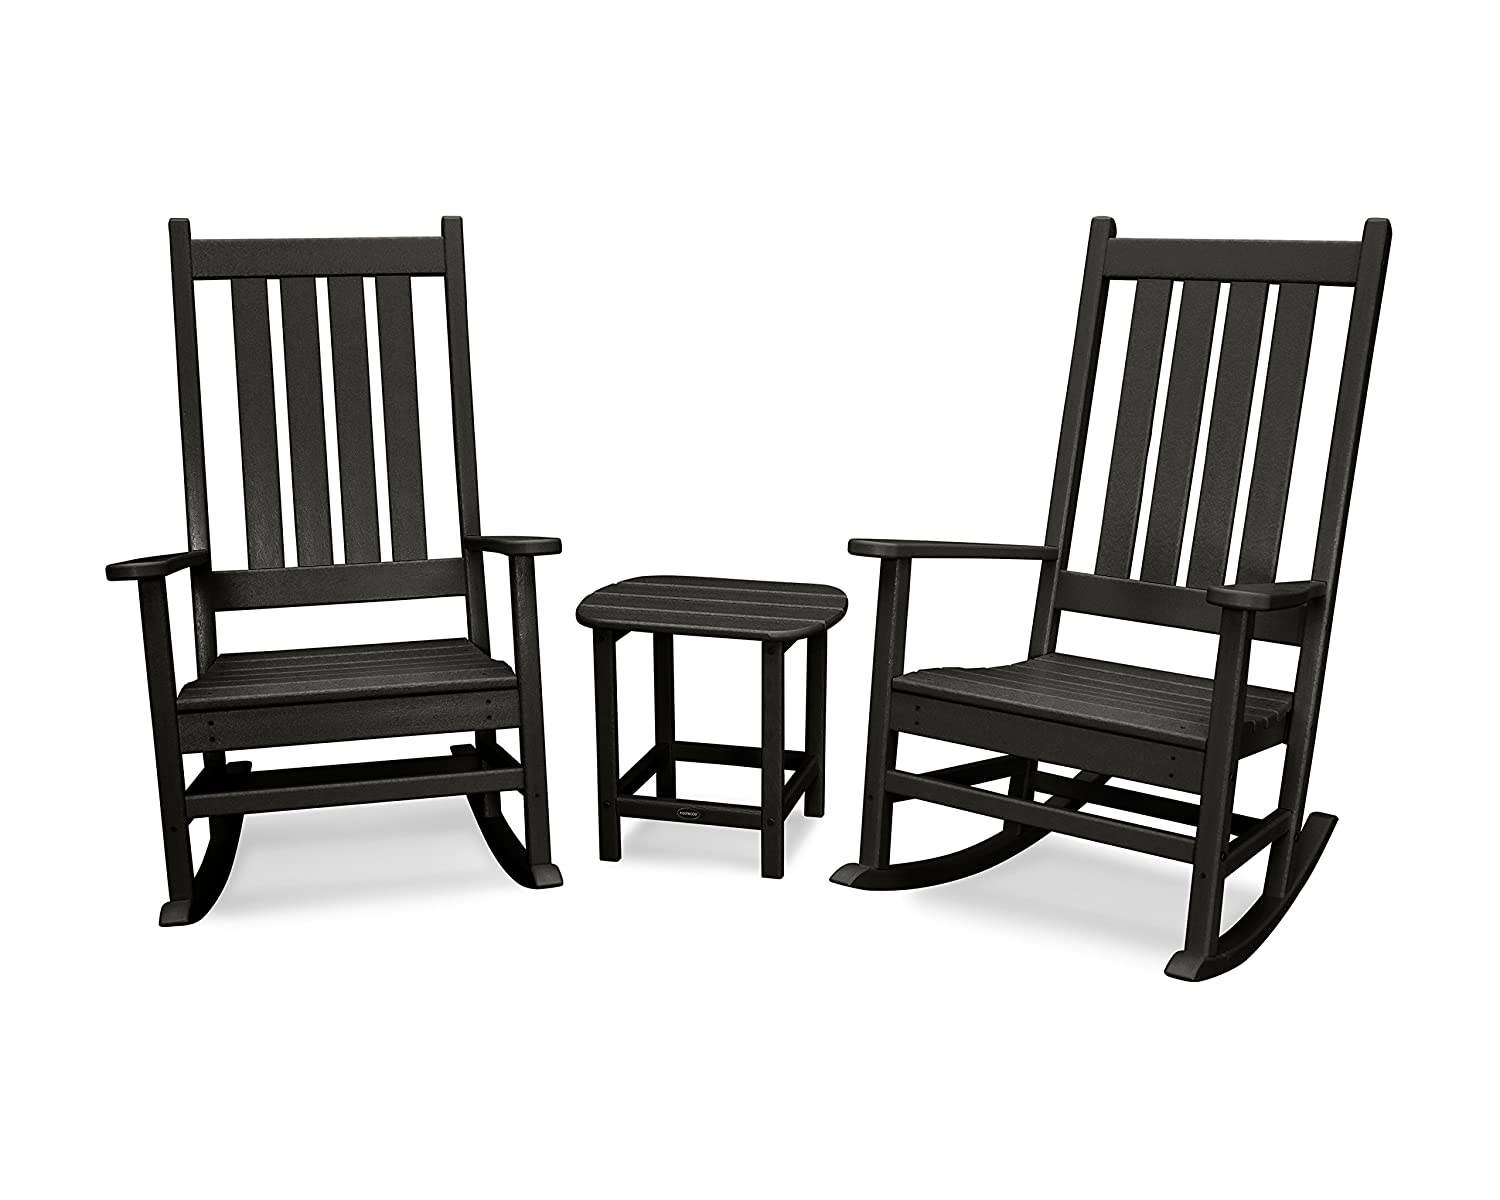 POLYWOOD Vineyard 3-Piece Rocking Set Black